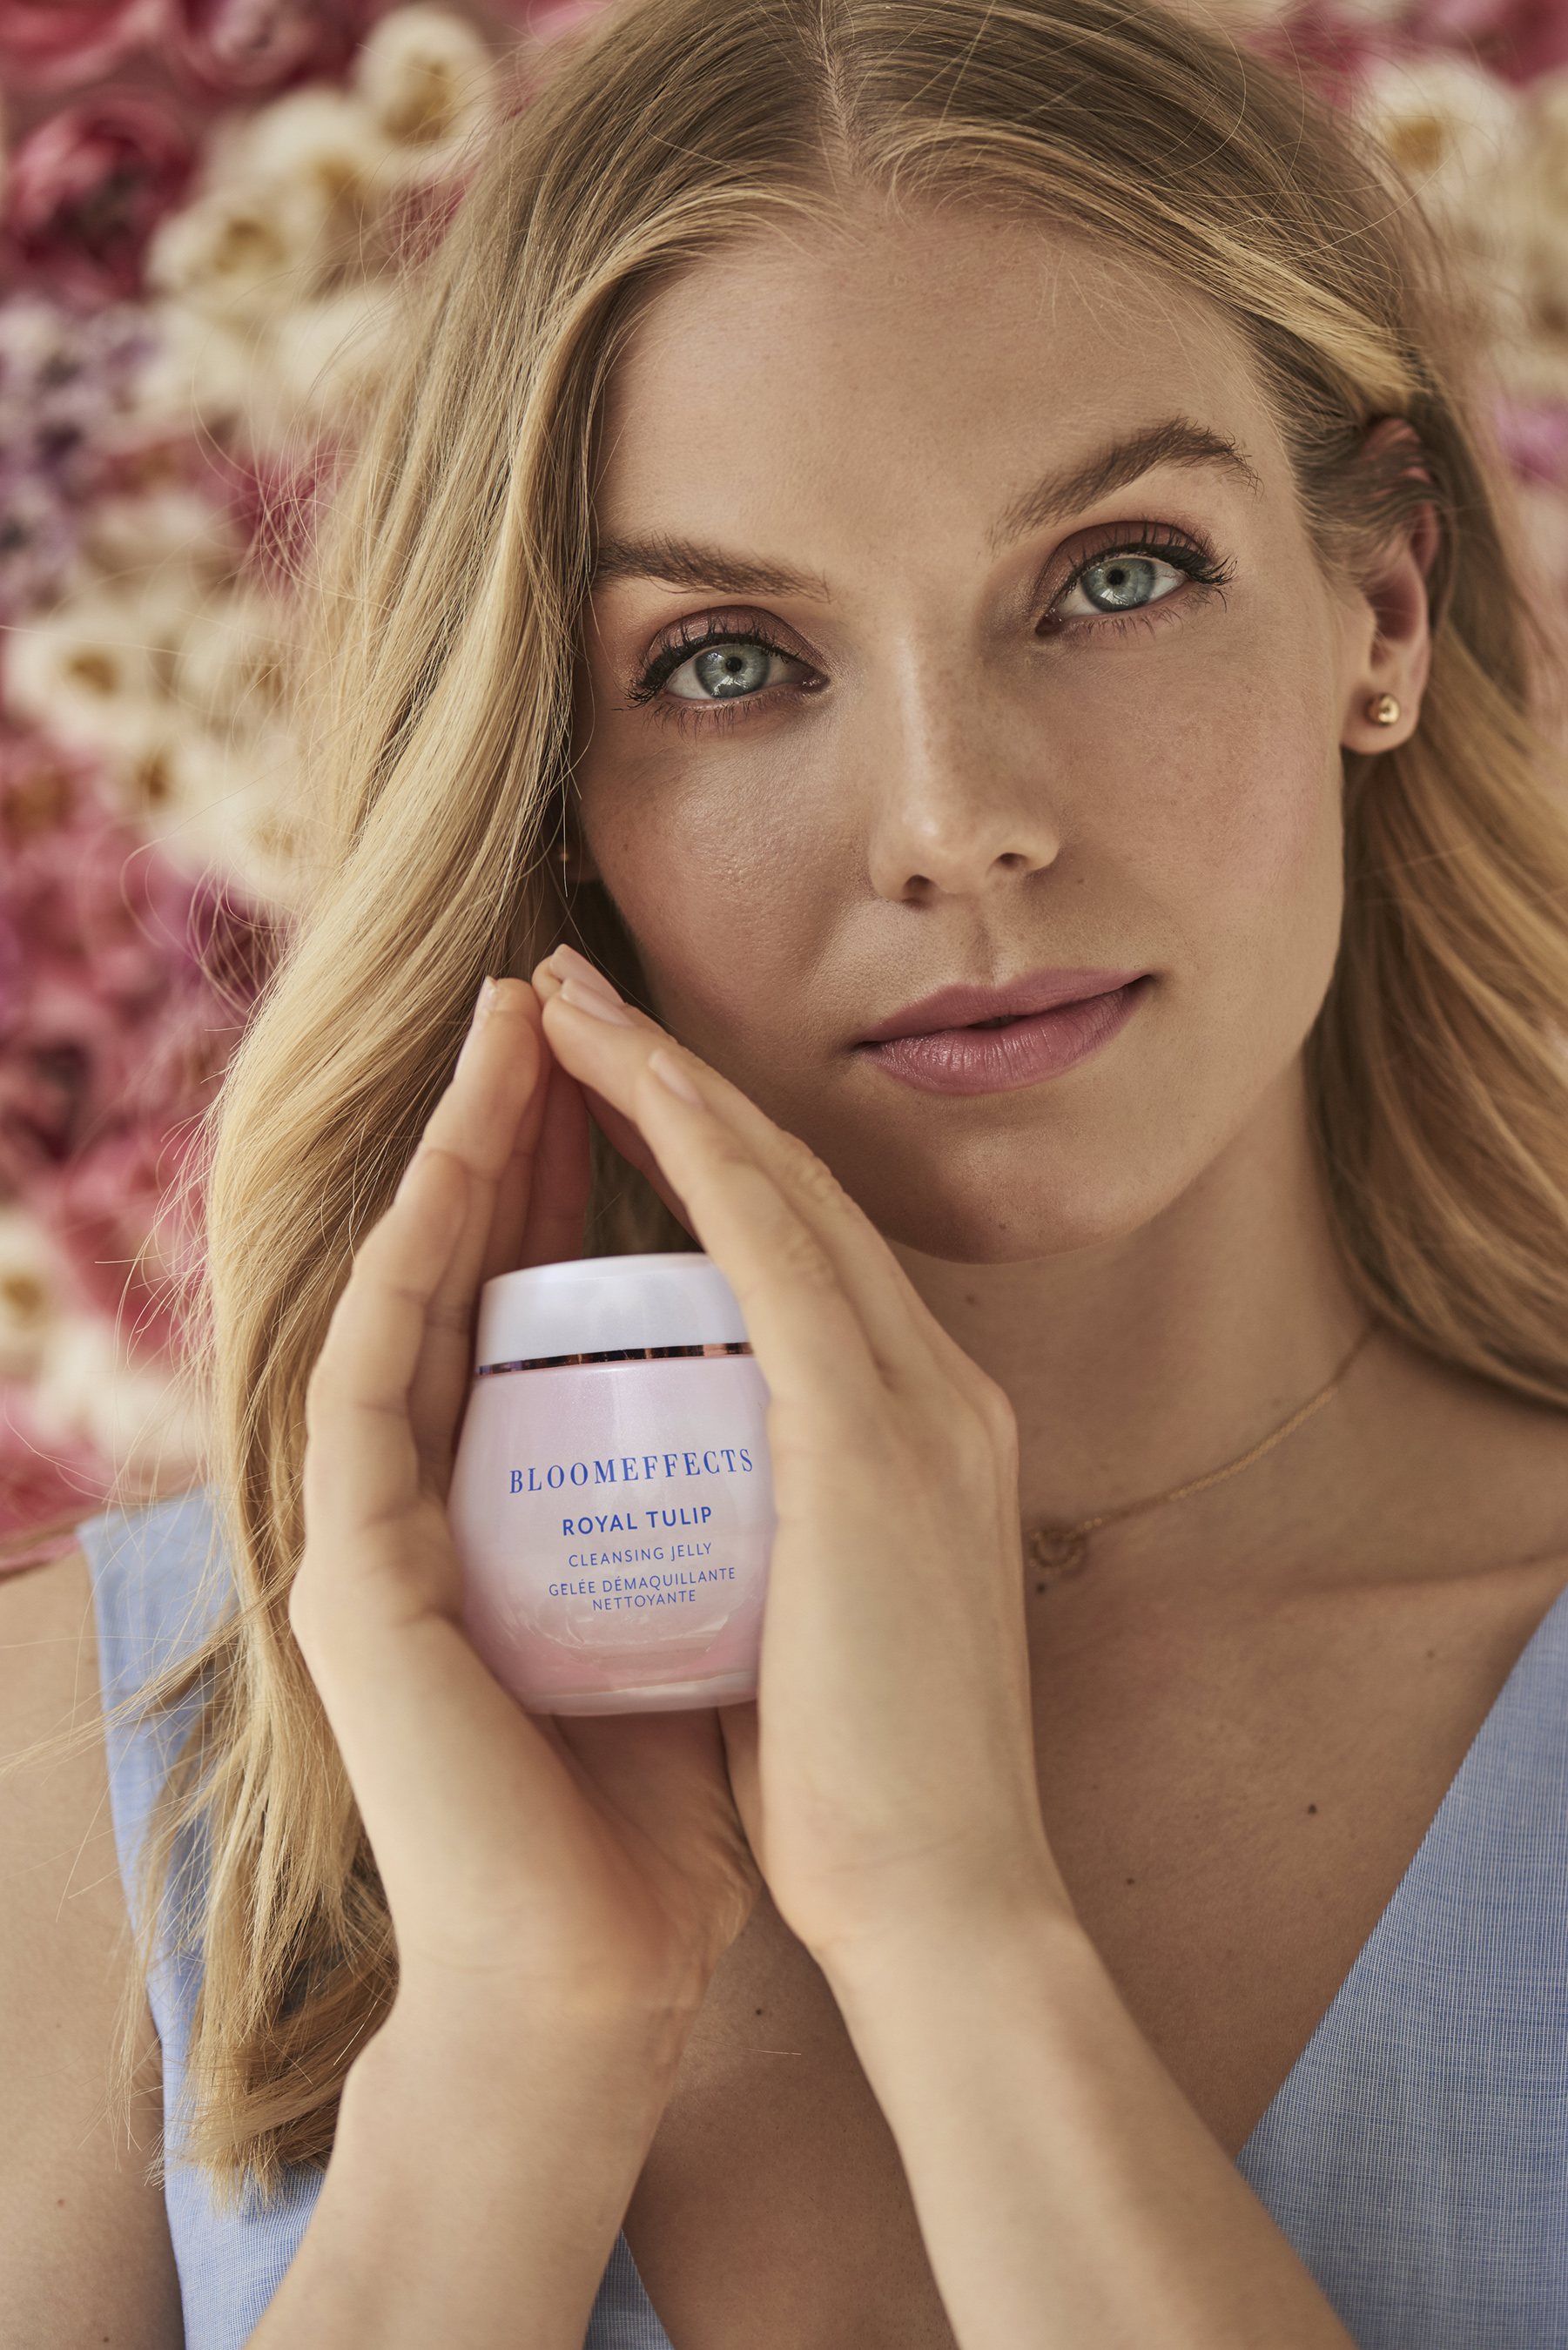 Royal Tulip Cleansing Jelly: A nourishing, hydrating, and powerful cleansing balm; $39